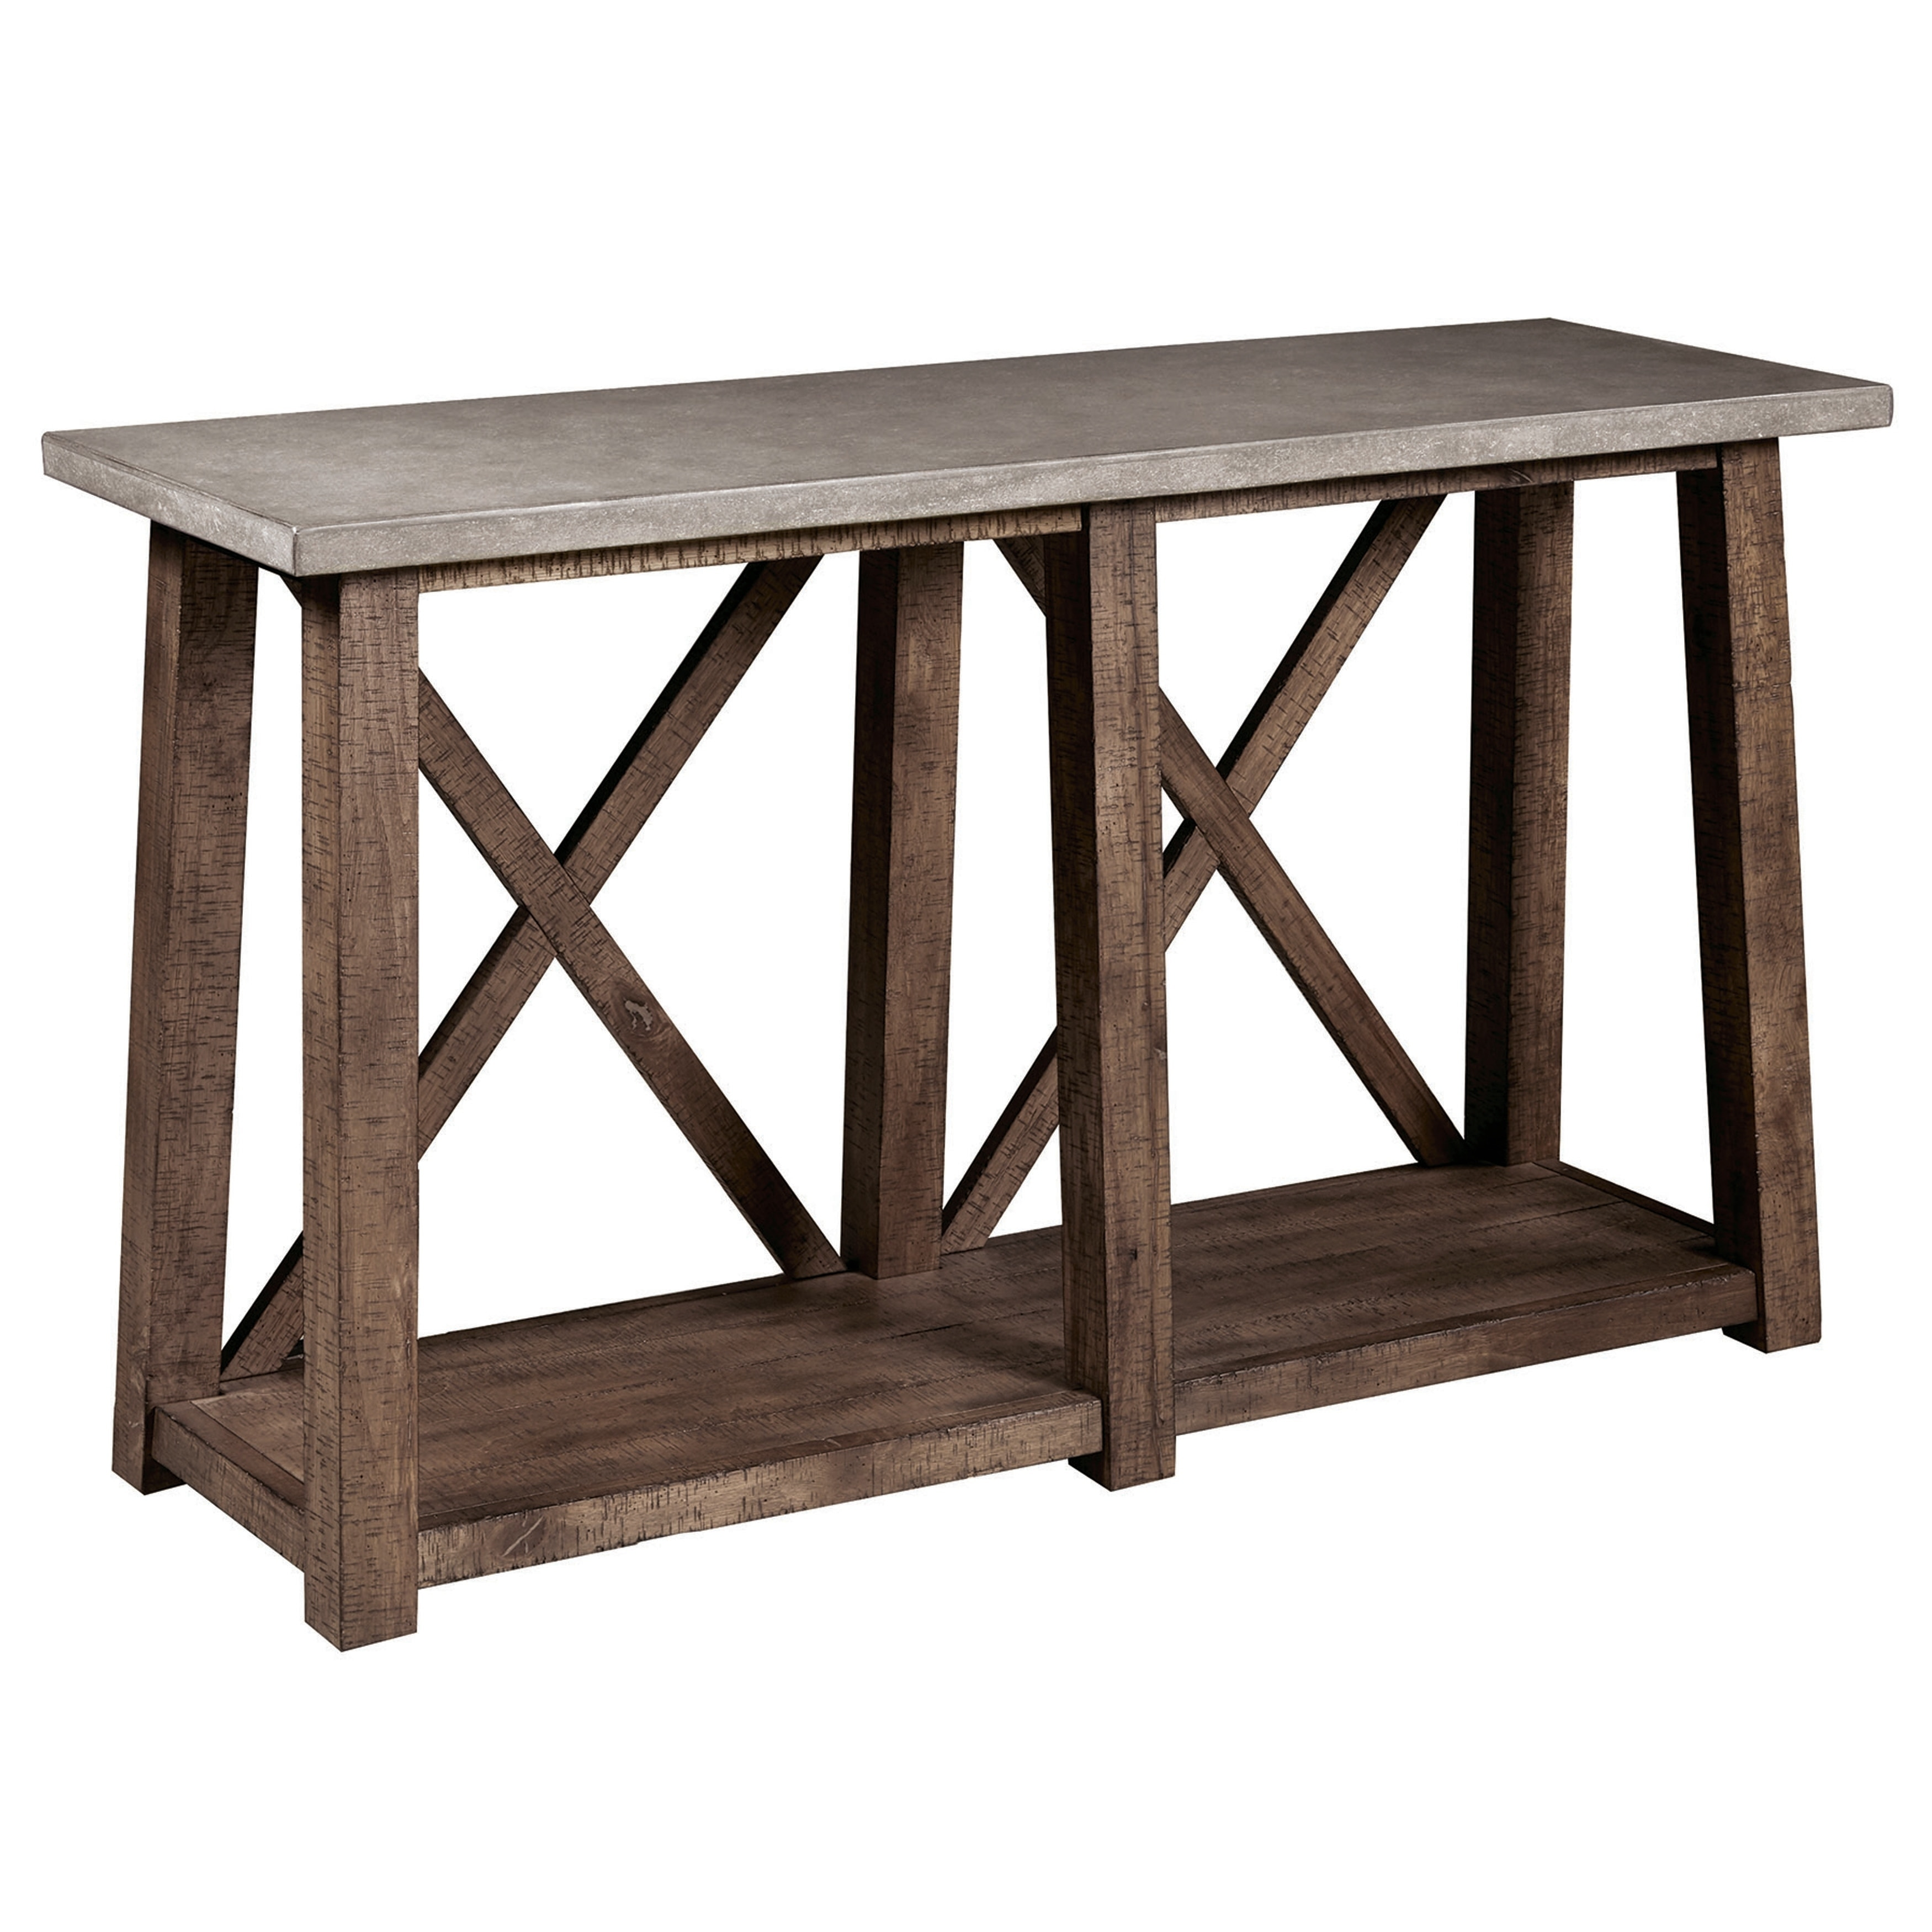 Farmhouse Style Distressed Sofa Table Free Shipping Today 21634042